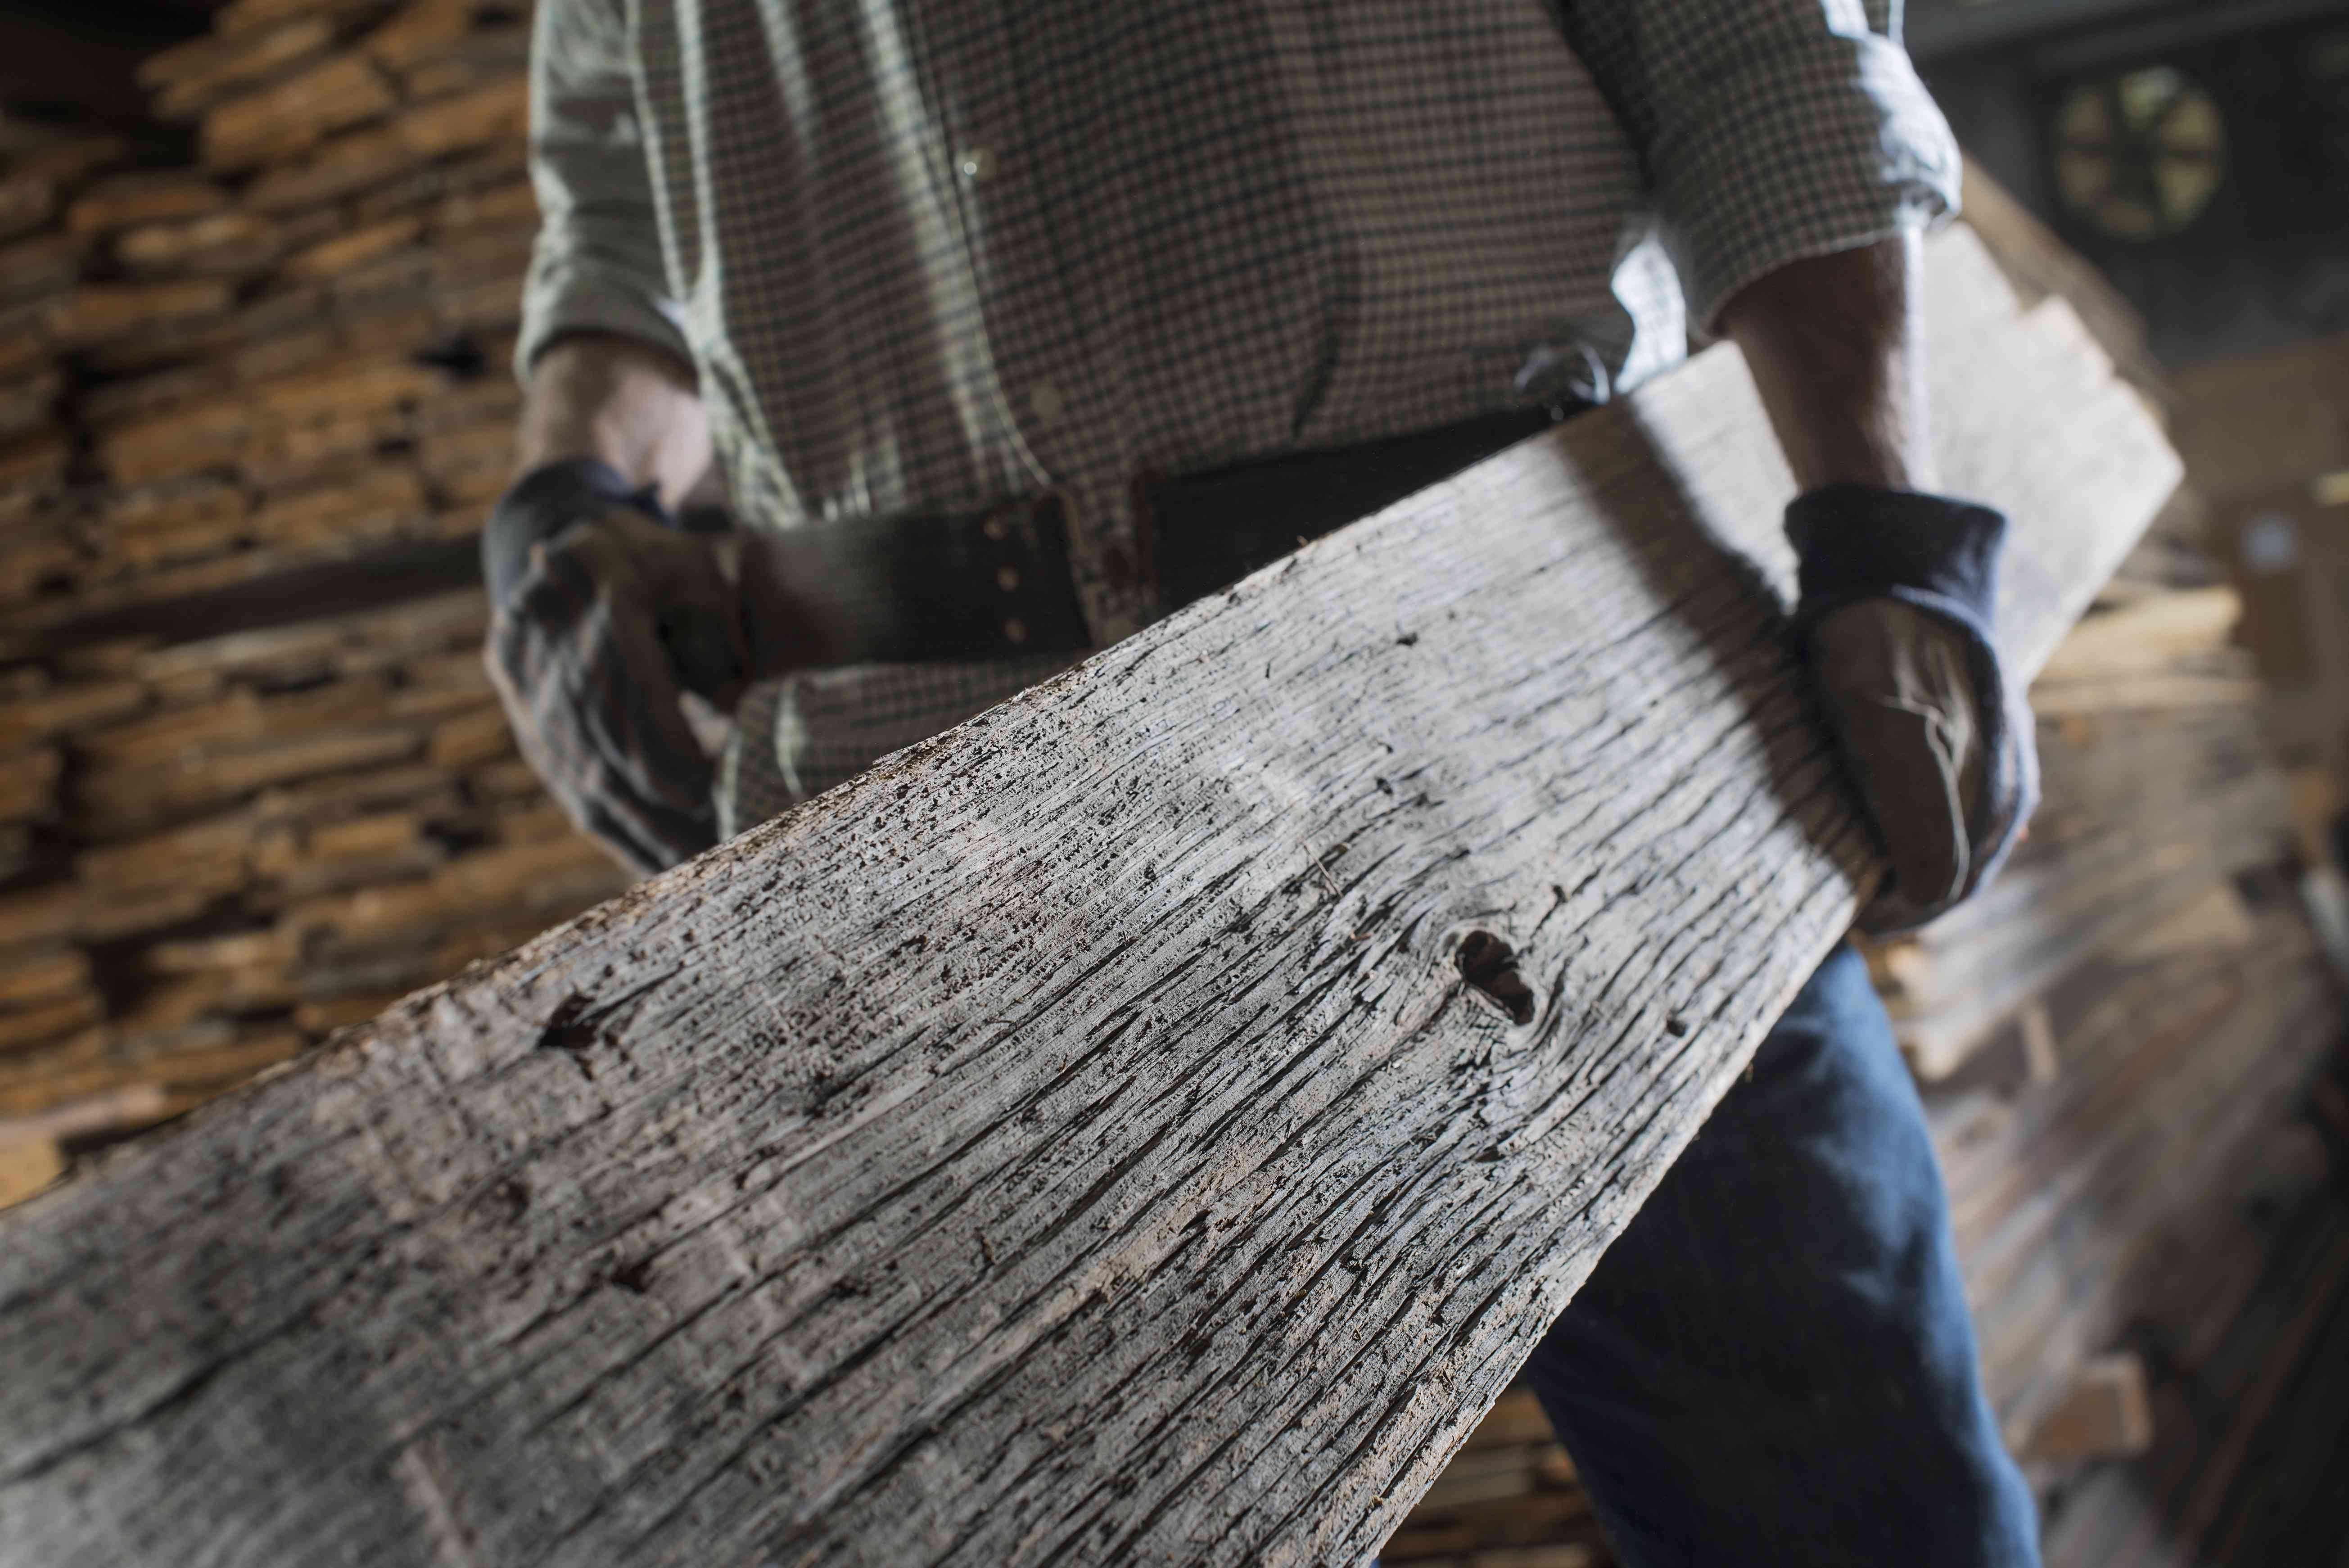 A man carrying a large plank of reclaimed wood